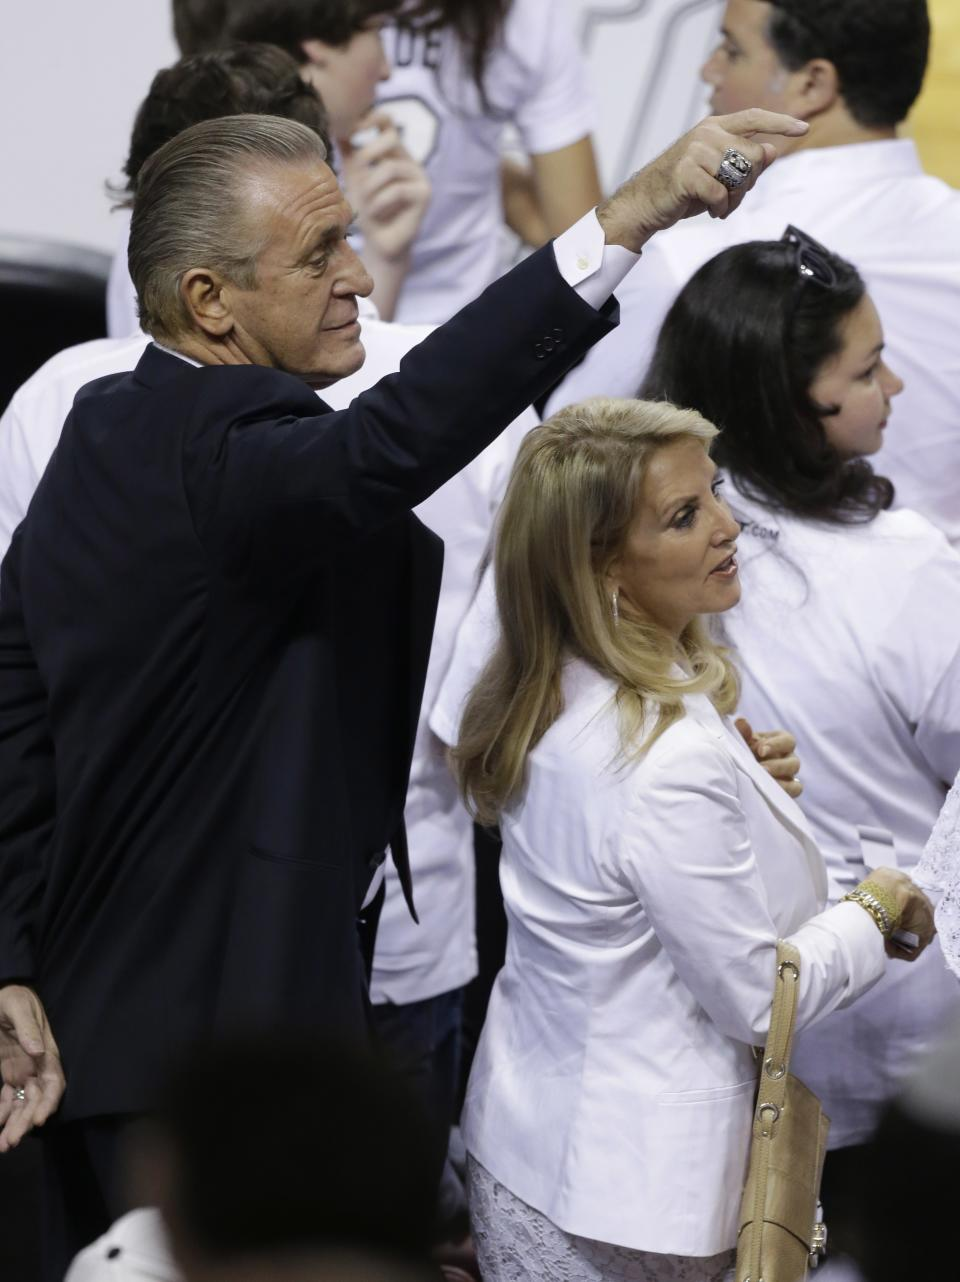 Miami Heat president Pat Riley and his wife Chris watch action before the first half in Game 7 of the NBA basketball championships against the San Antonio Spurs, Thursday, June 20, 2013, in Miami. (AP Photo/Wilfredo Lee)